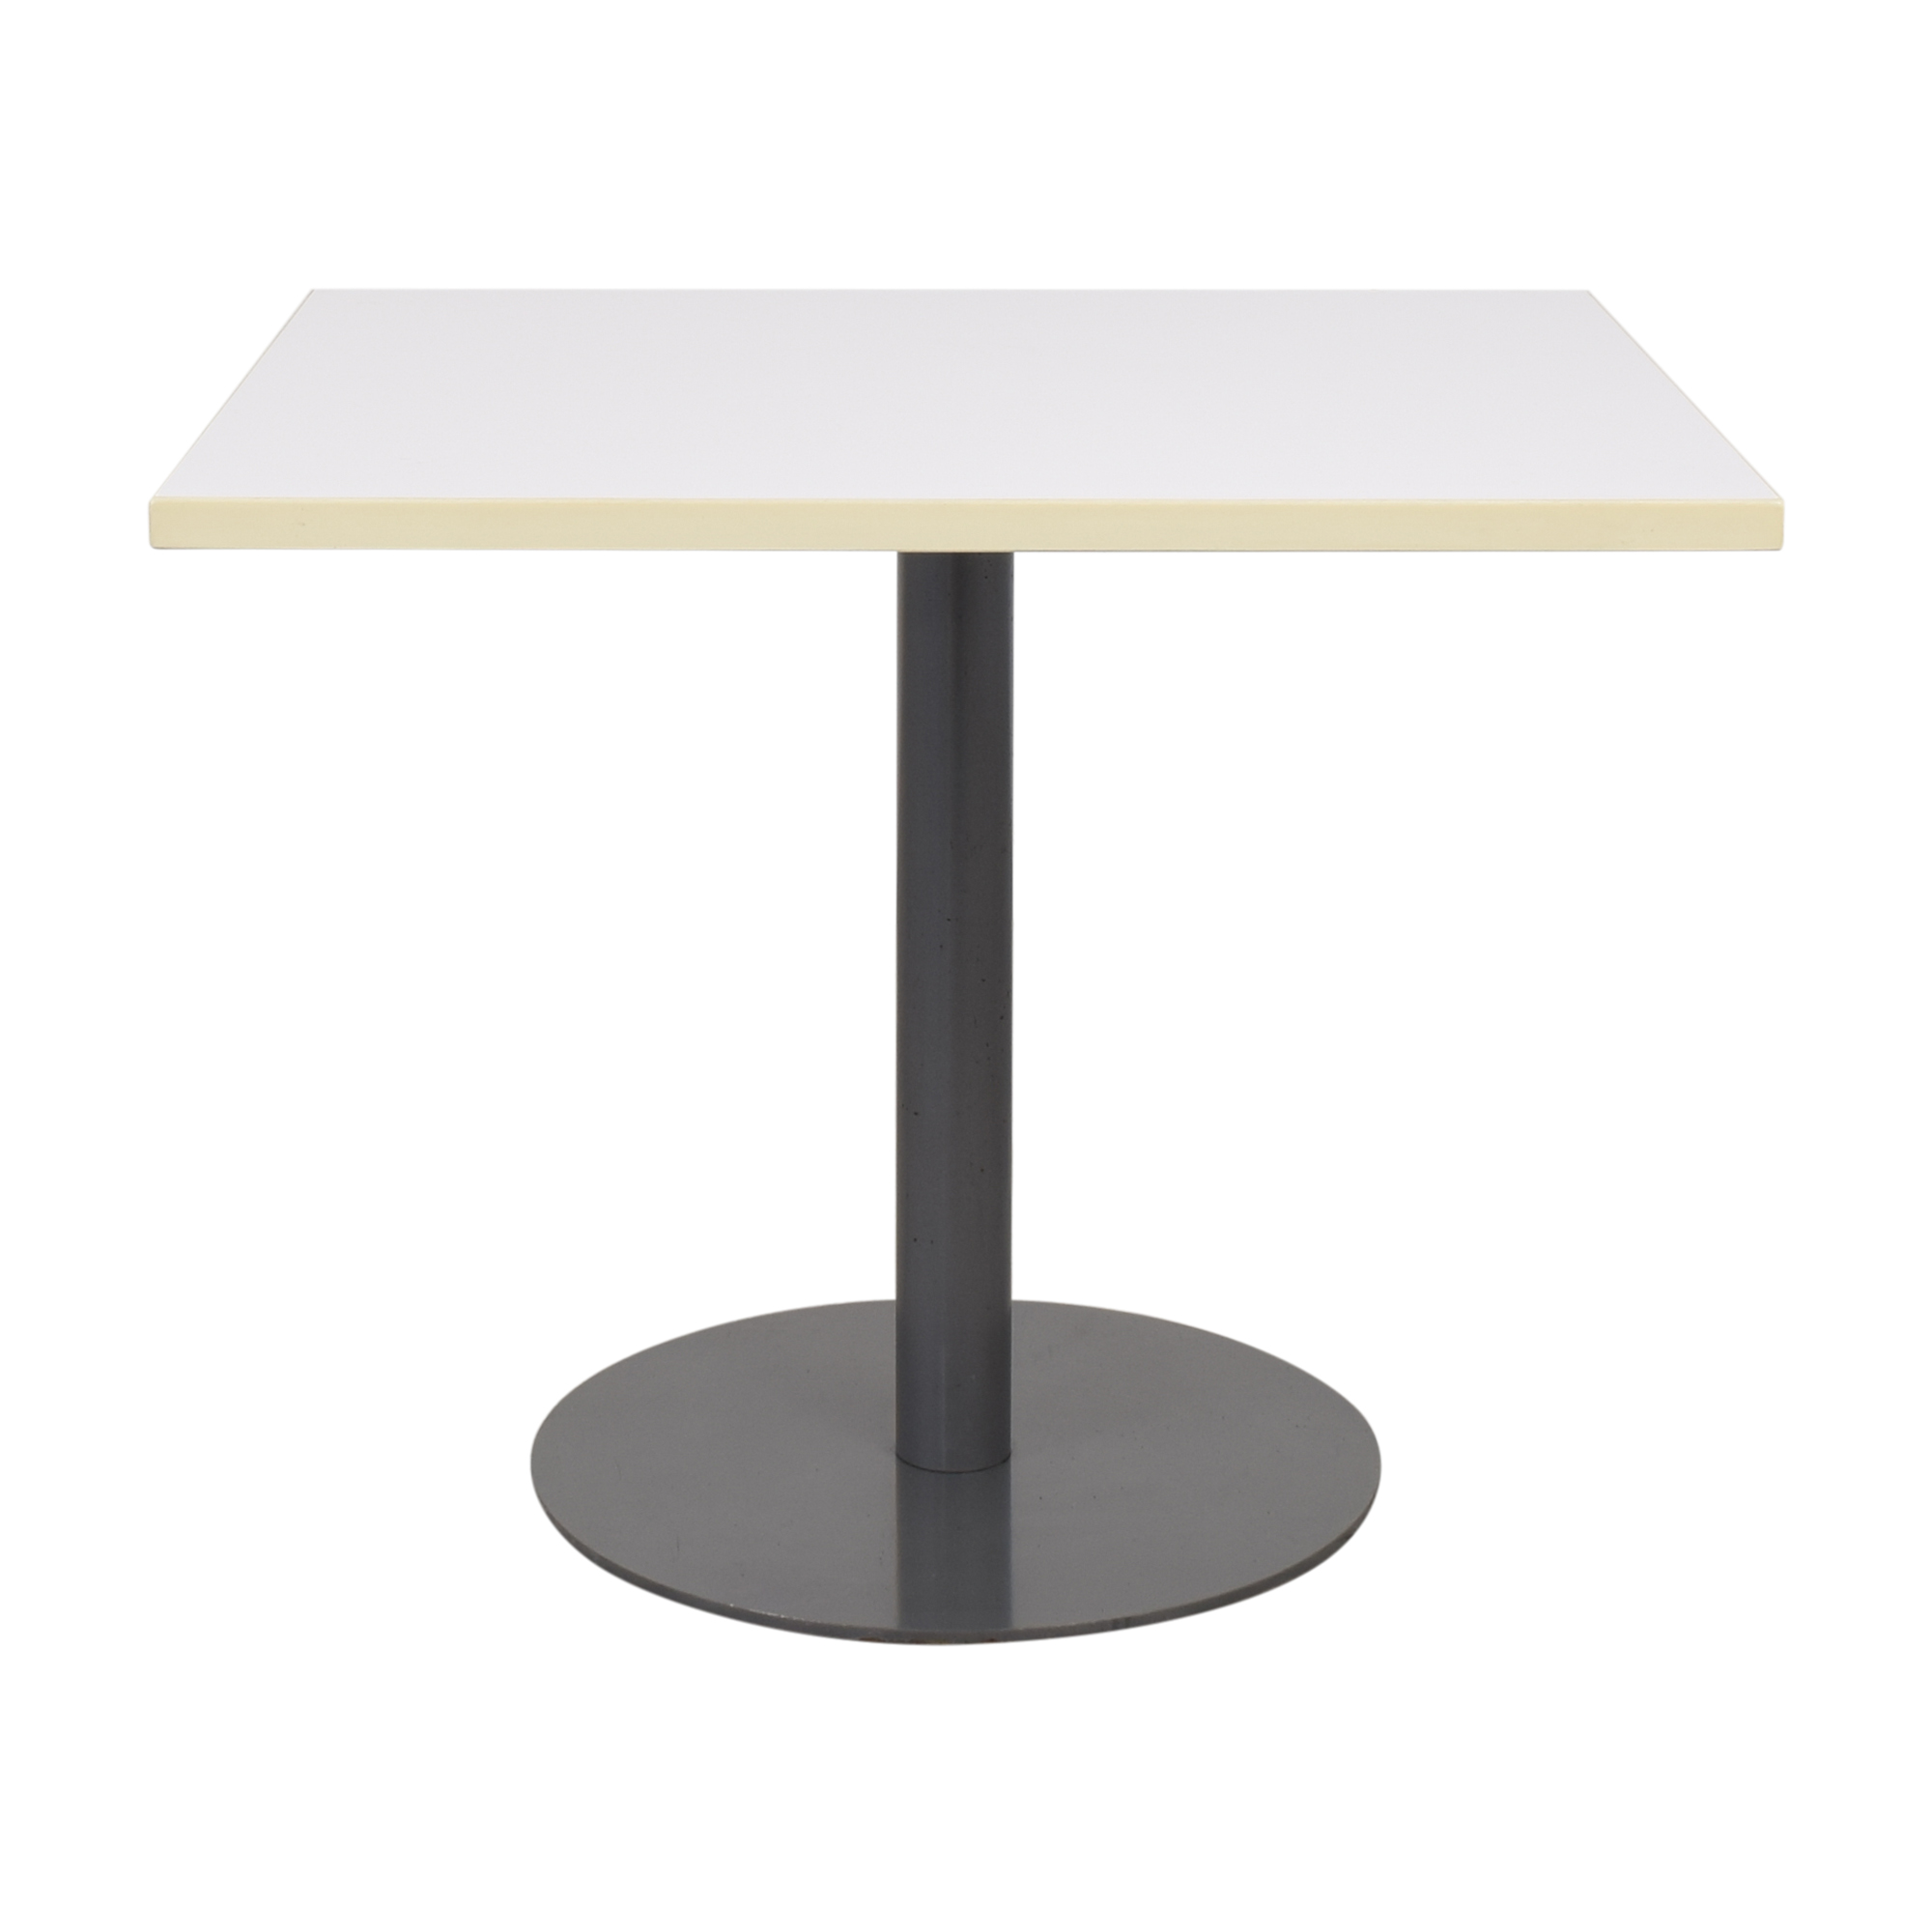 Square Pedestal Table or End Table / Tables